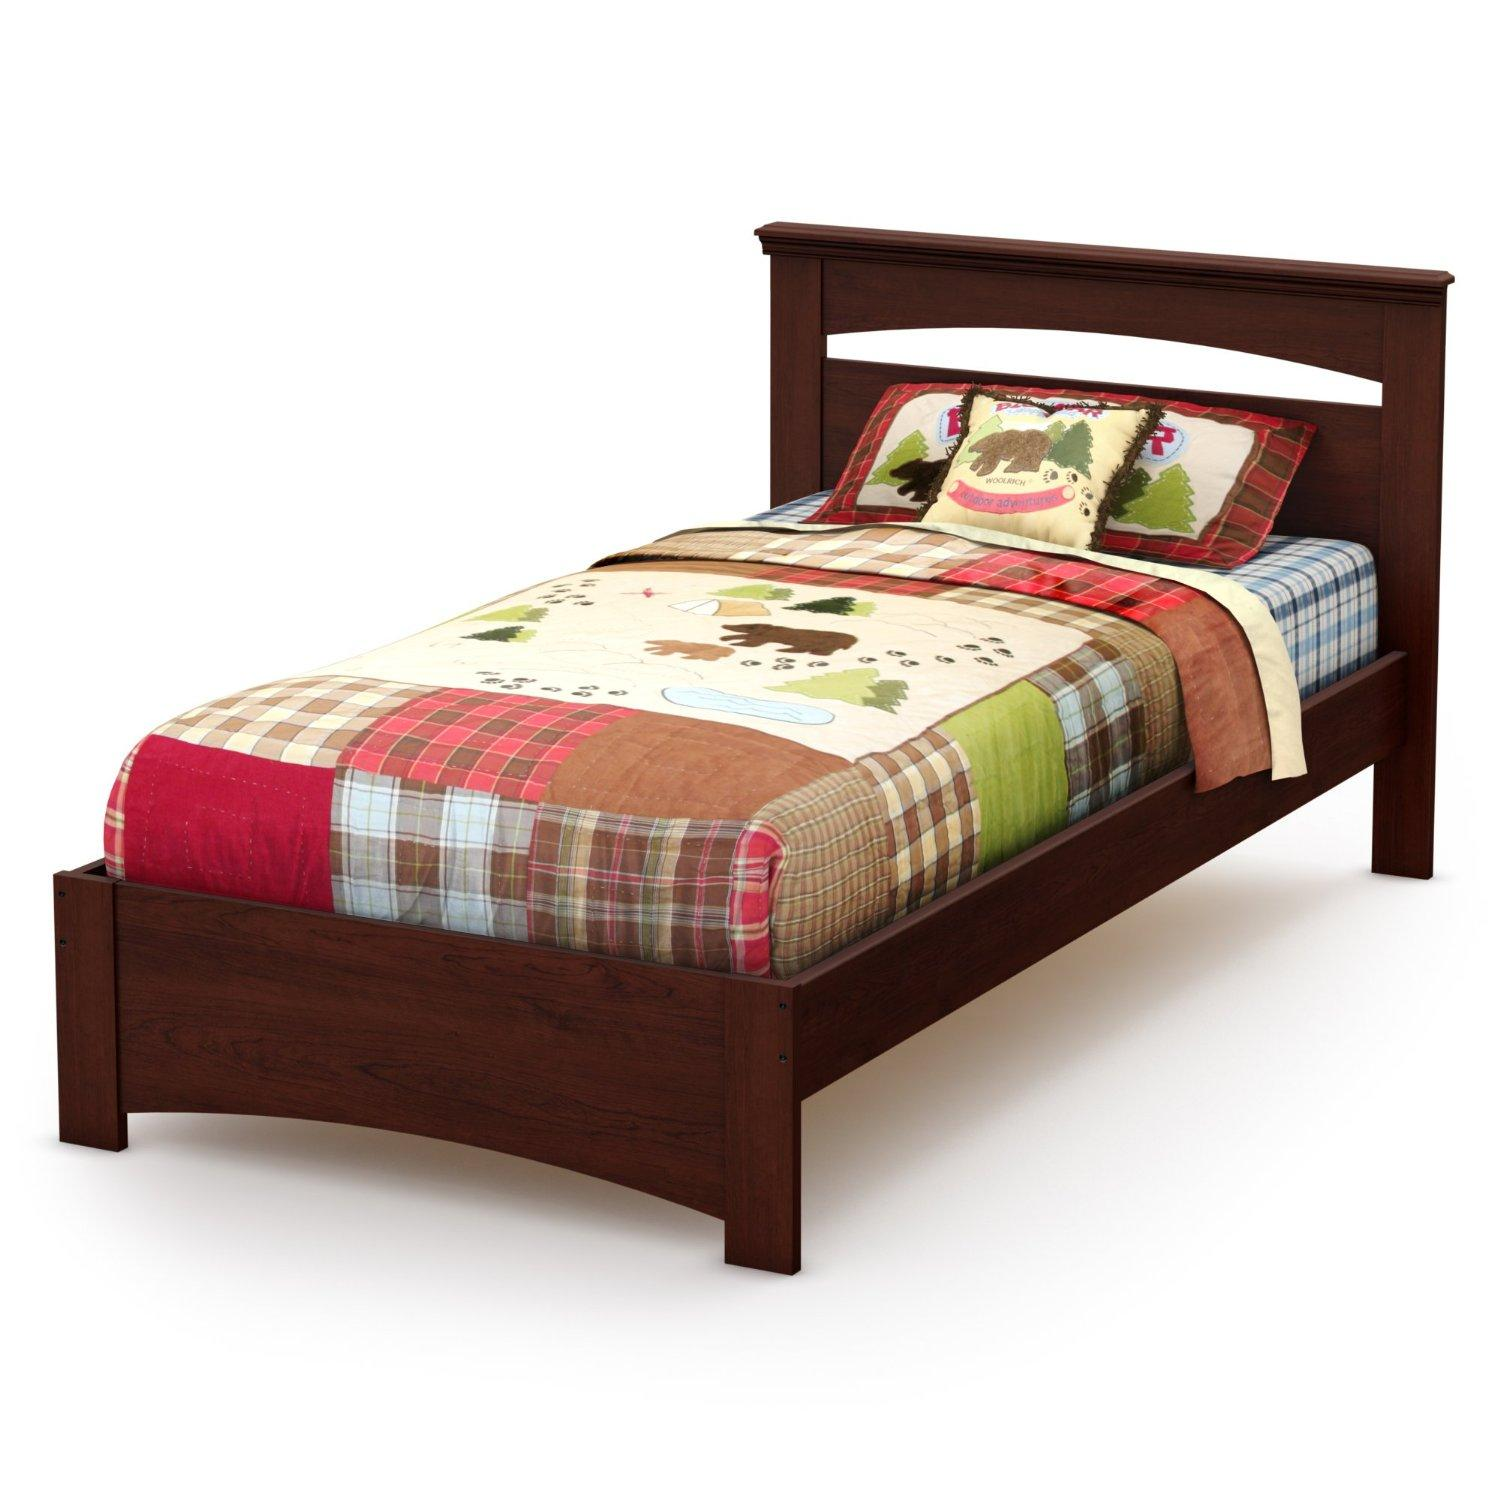 South Shore Libra Twin Bed Set By OJ Commerce 3859189